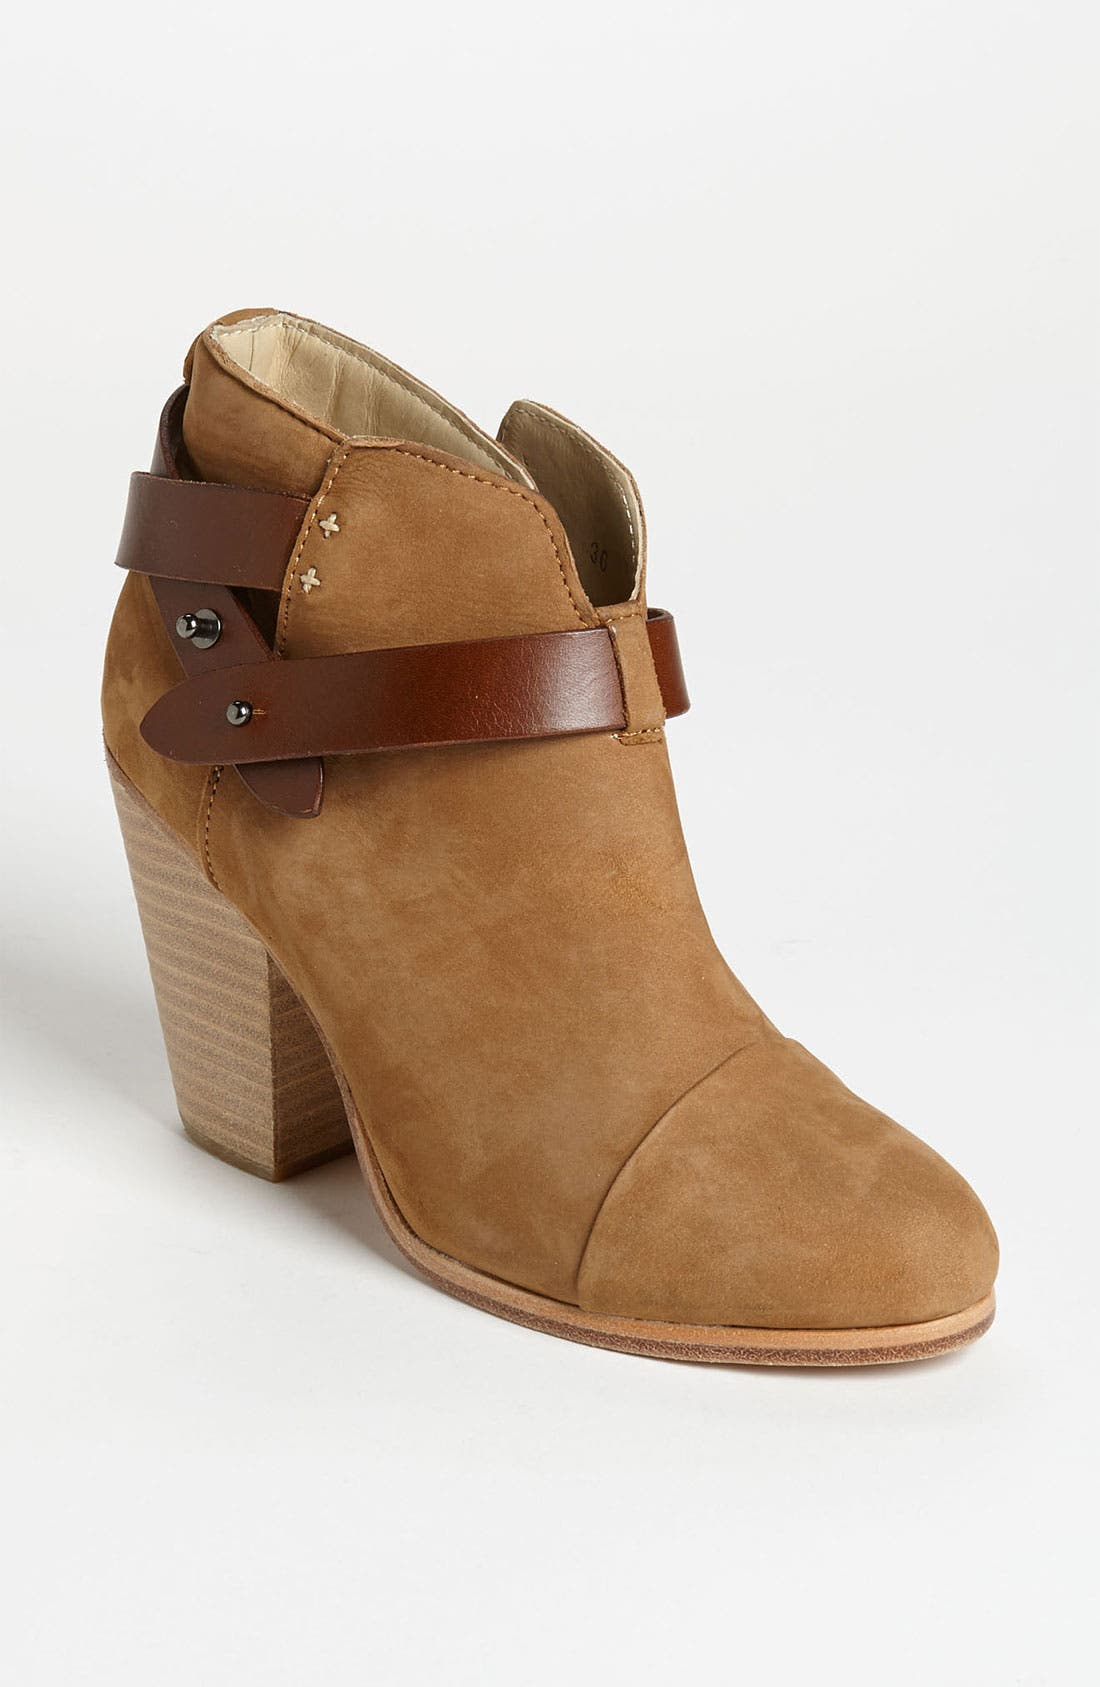 Alternate Image 1 Selected - rag & bone 'Harrow' Bootie